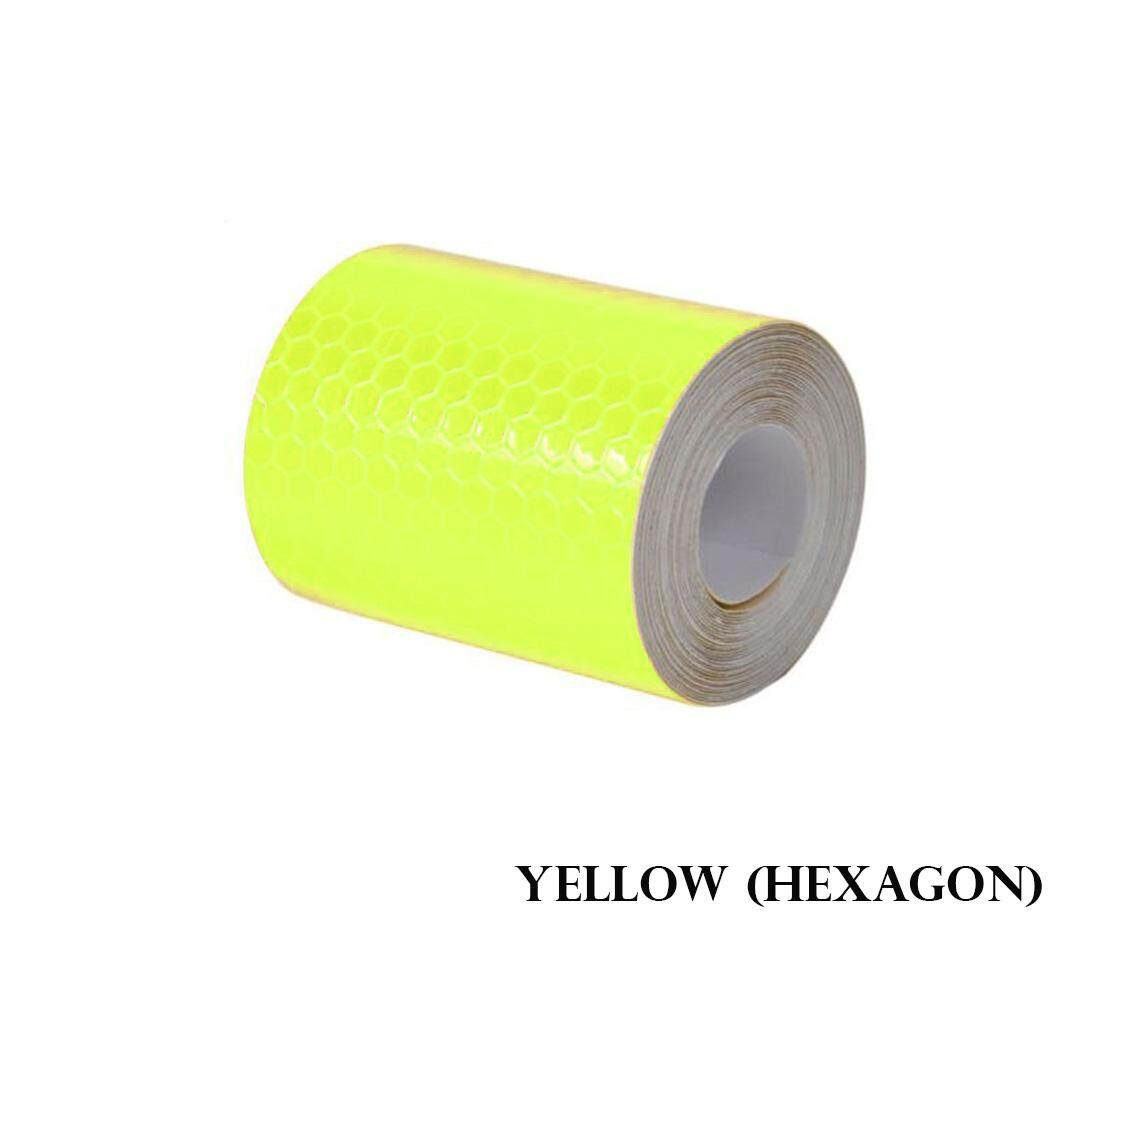 300cm X 5cm Reflective Self-adhesive Safety Warning Tape Roll Film Sticker 6 Colors